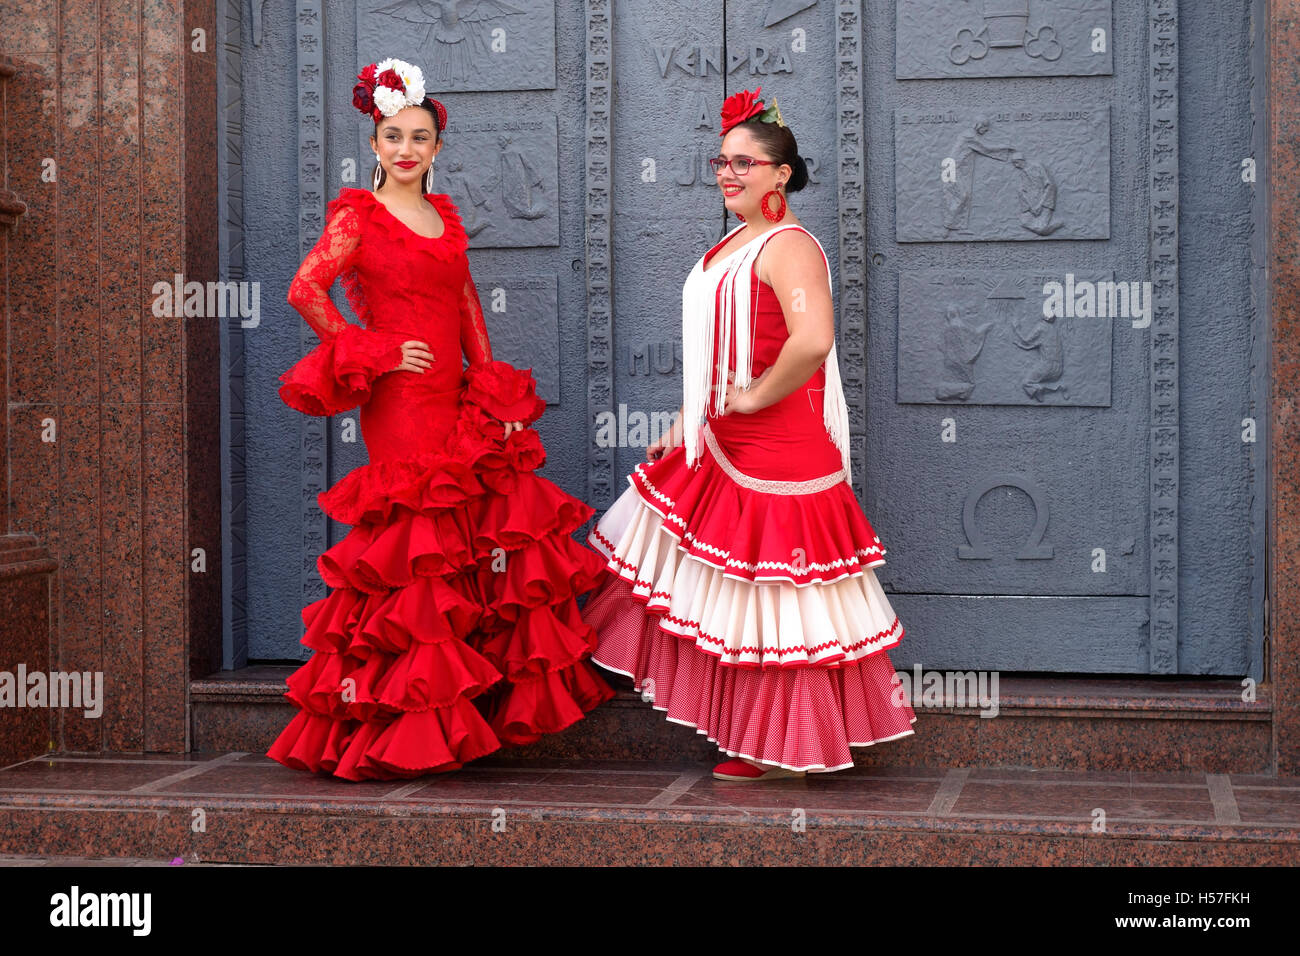 c3d46fd077fd Two girls in a traditional flamenco dresses during the annual feria in  Fuengirola in Southern Spain. Costa del Sol.